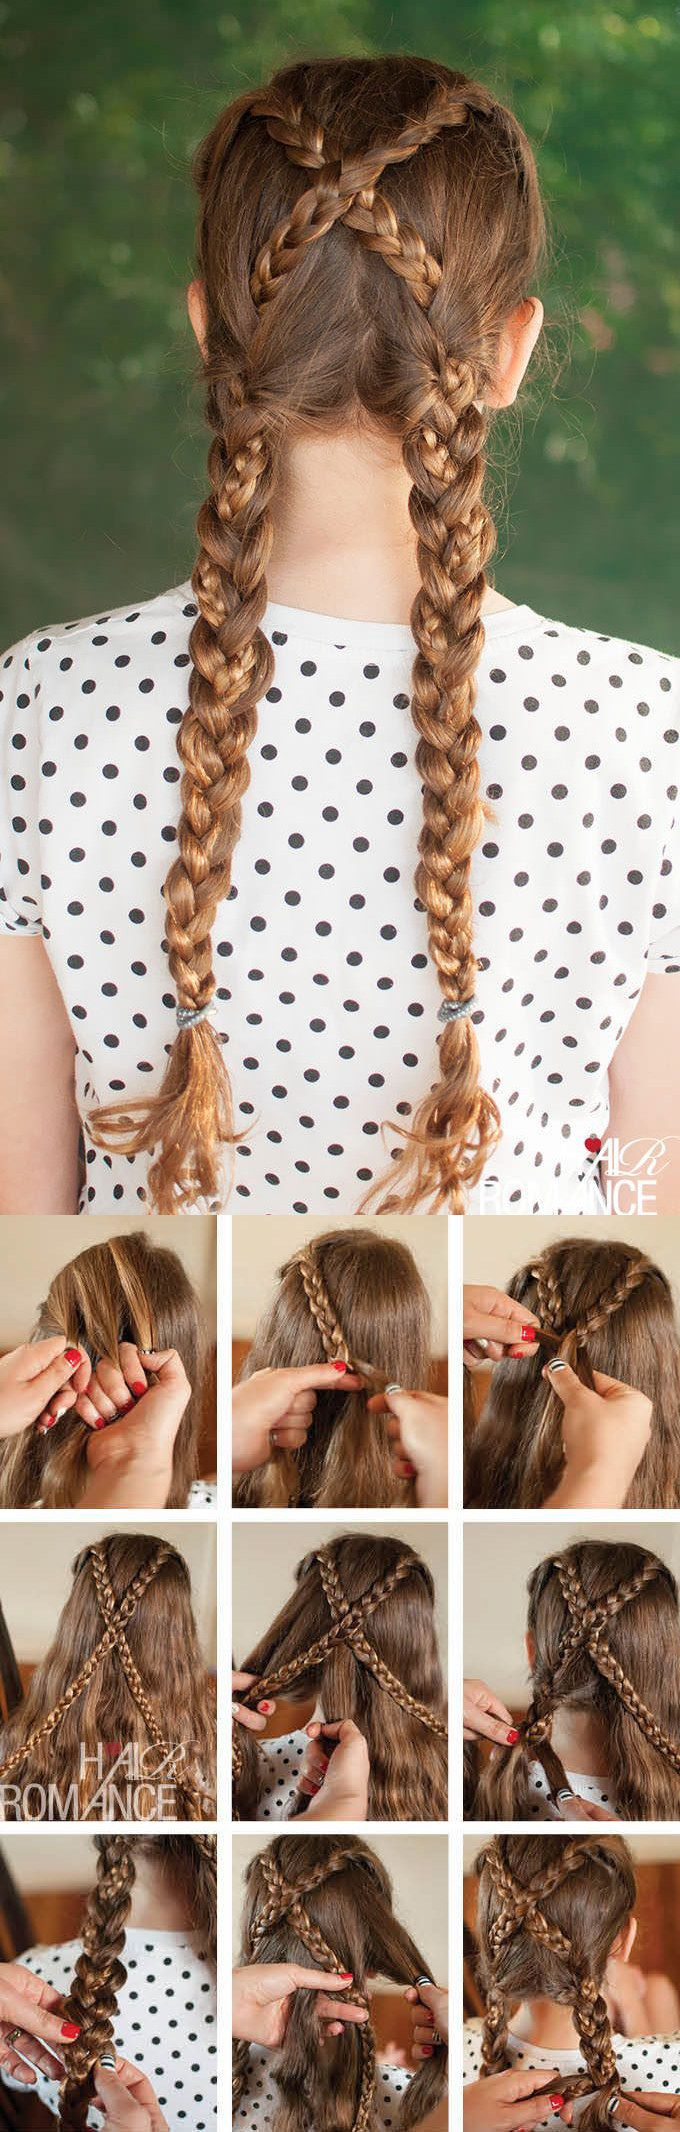 10 Beautiful Hair Tutorials To Unleash Your Inner Disney Princess ~  Anna from Frozen braid tutorial